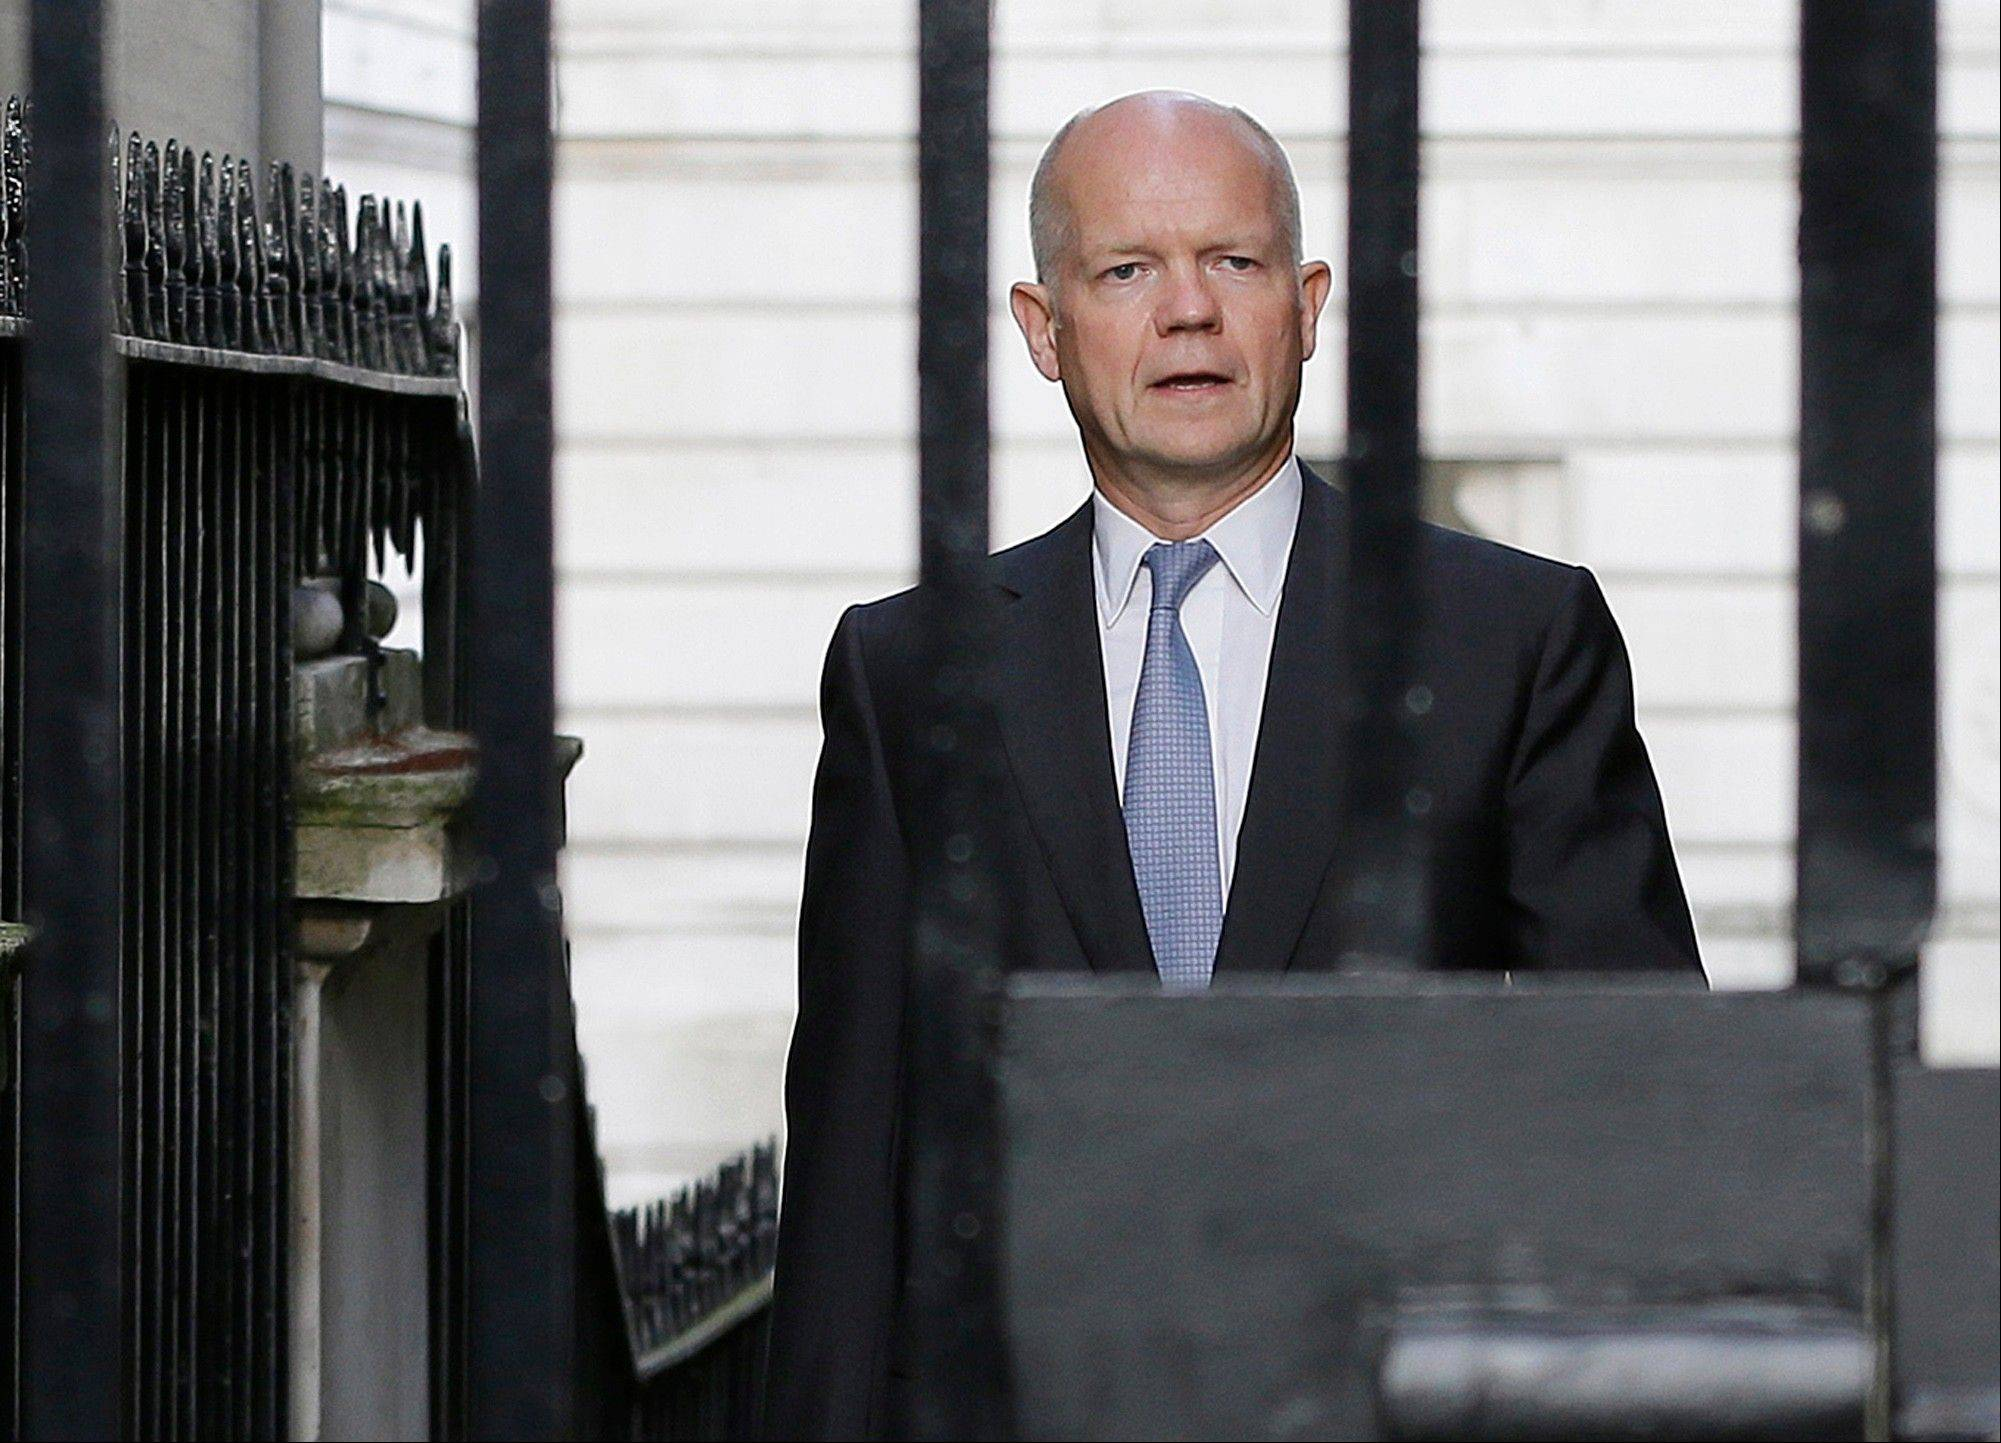 Britain Foreign Secretary William Hague walks to Downing Street Wednesday ahead of a national security meeting to be held at the Cabinet office with Prime Minister David Cameron on the situation in Syria. The U.S. and international partners were unlikely to undertake military action before Thursday. That�s when Cameron will convene an emergency meeting of Parliament, where lawmakers were expected to vote on a motion clearing the way for a British response.